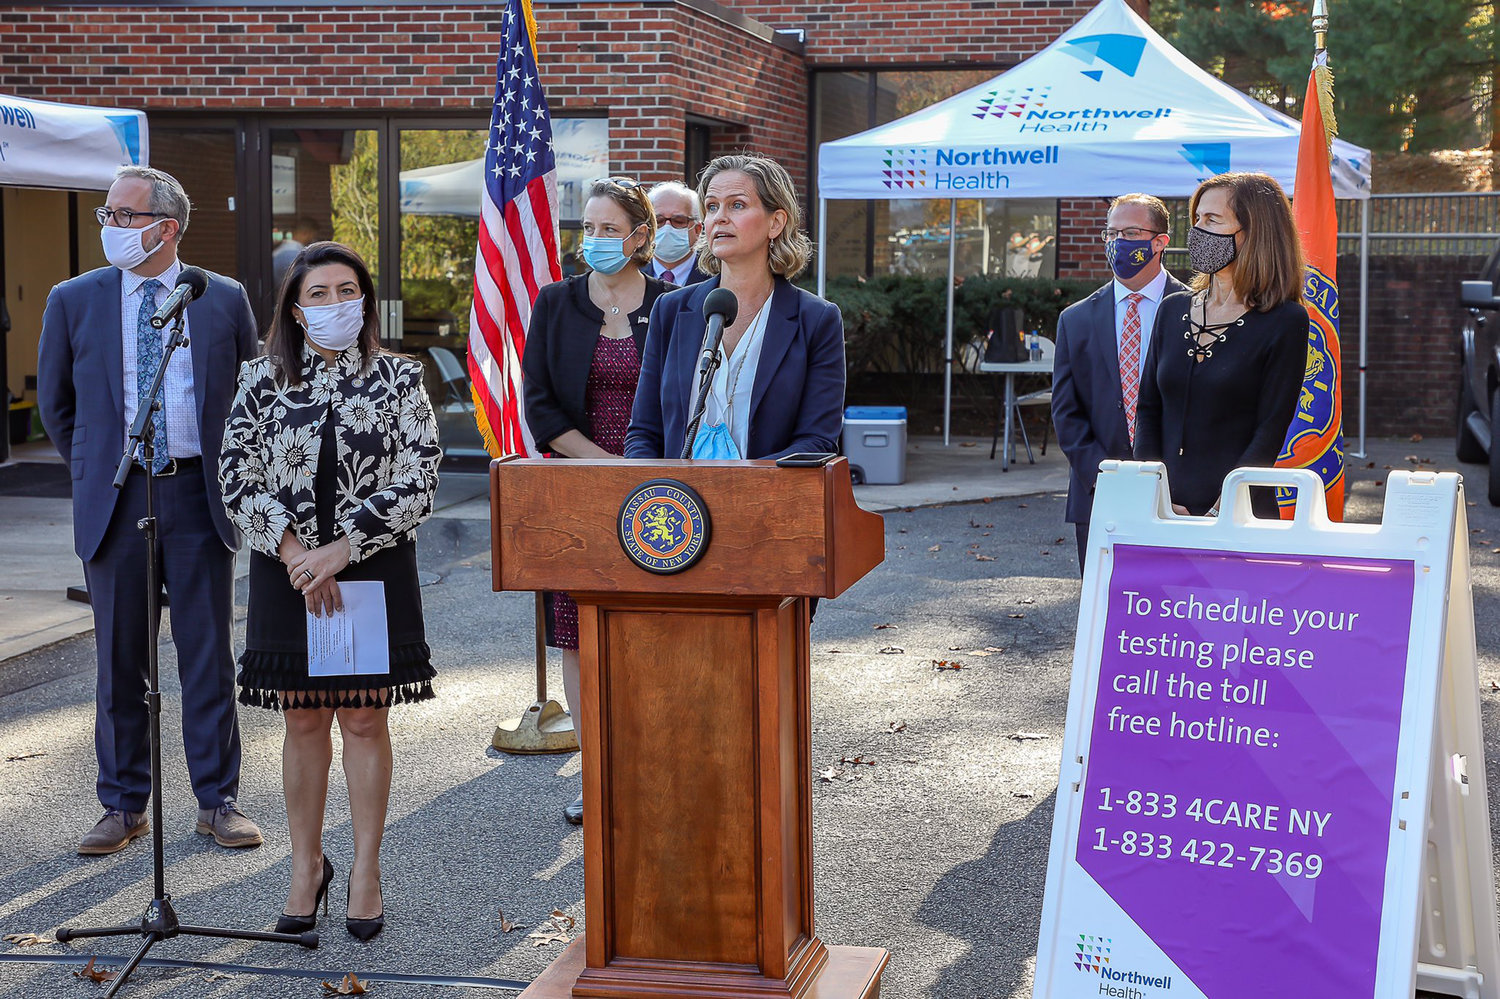 Nassau County Executive Laura Curran held a news conference to address coronavirus upticks in the county the day after Cuomo issued new regulations.